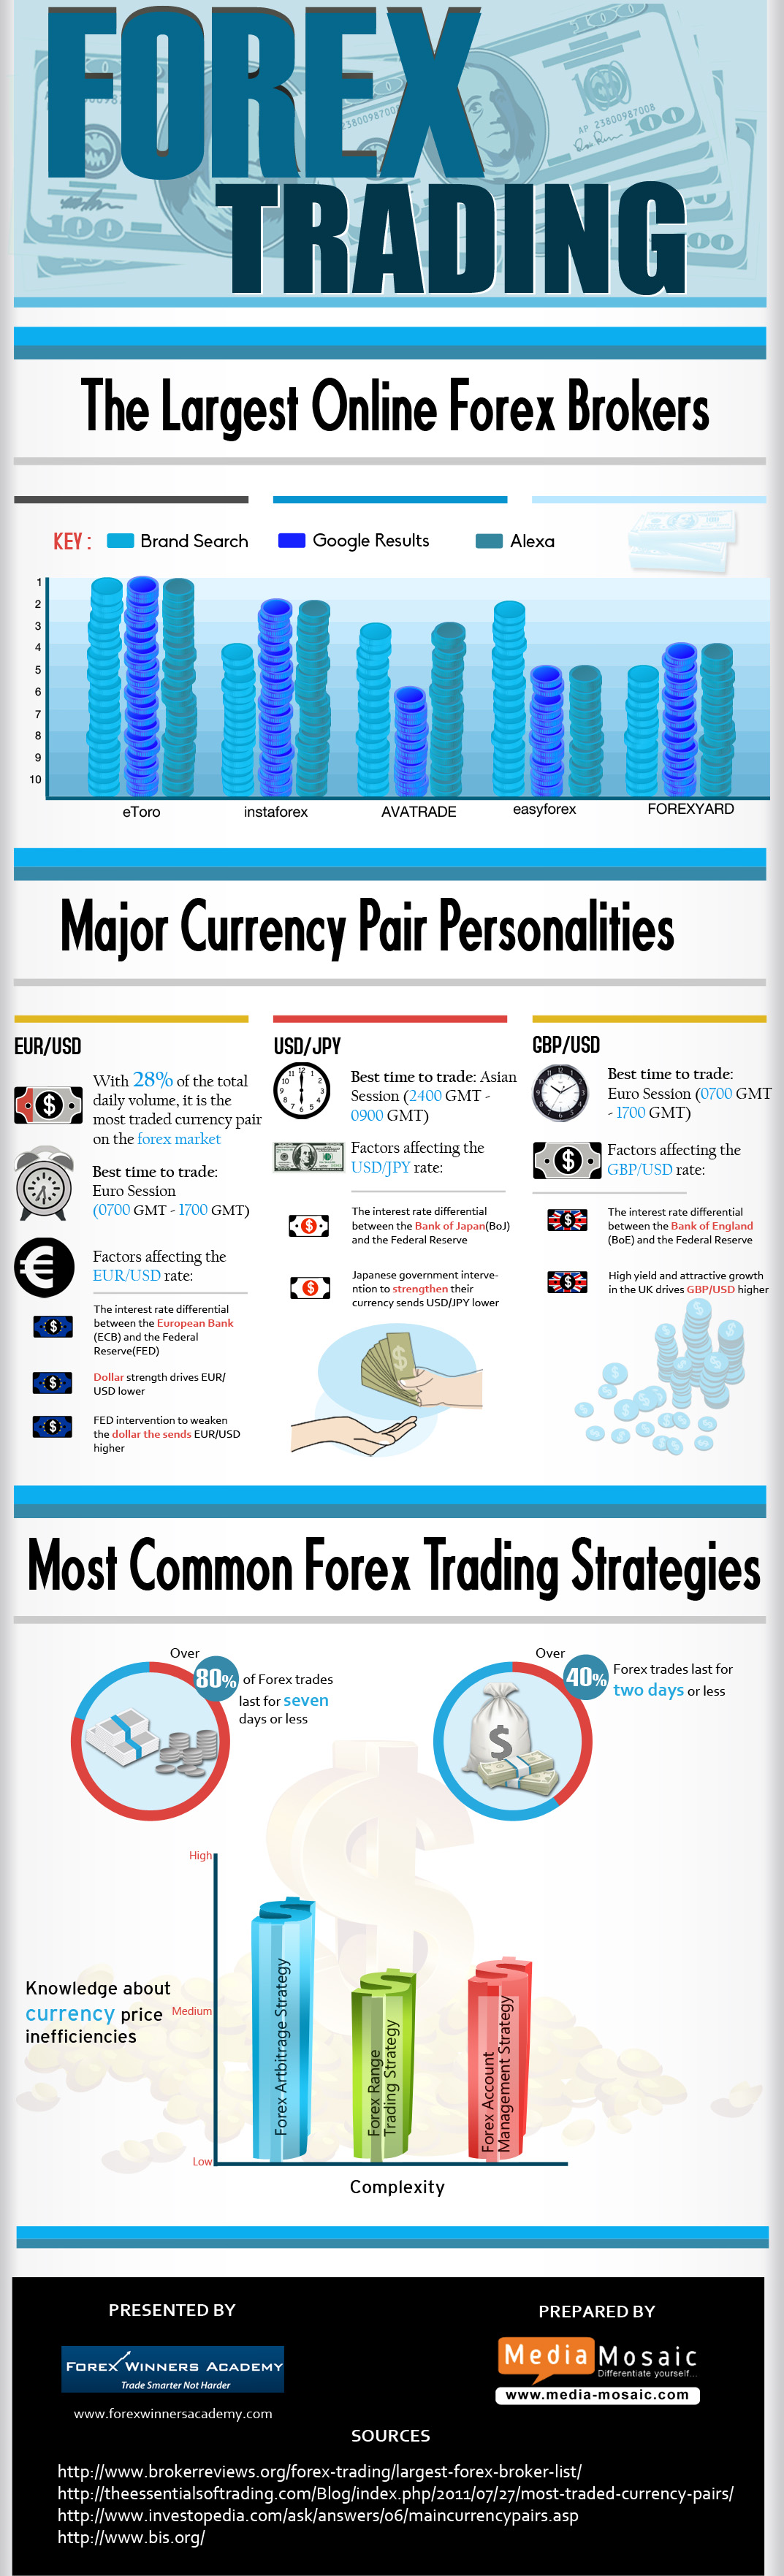 Forex brokers list 2014